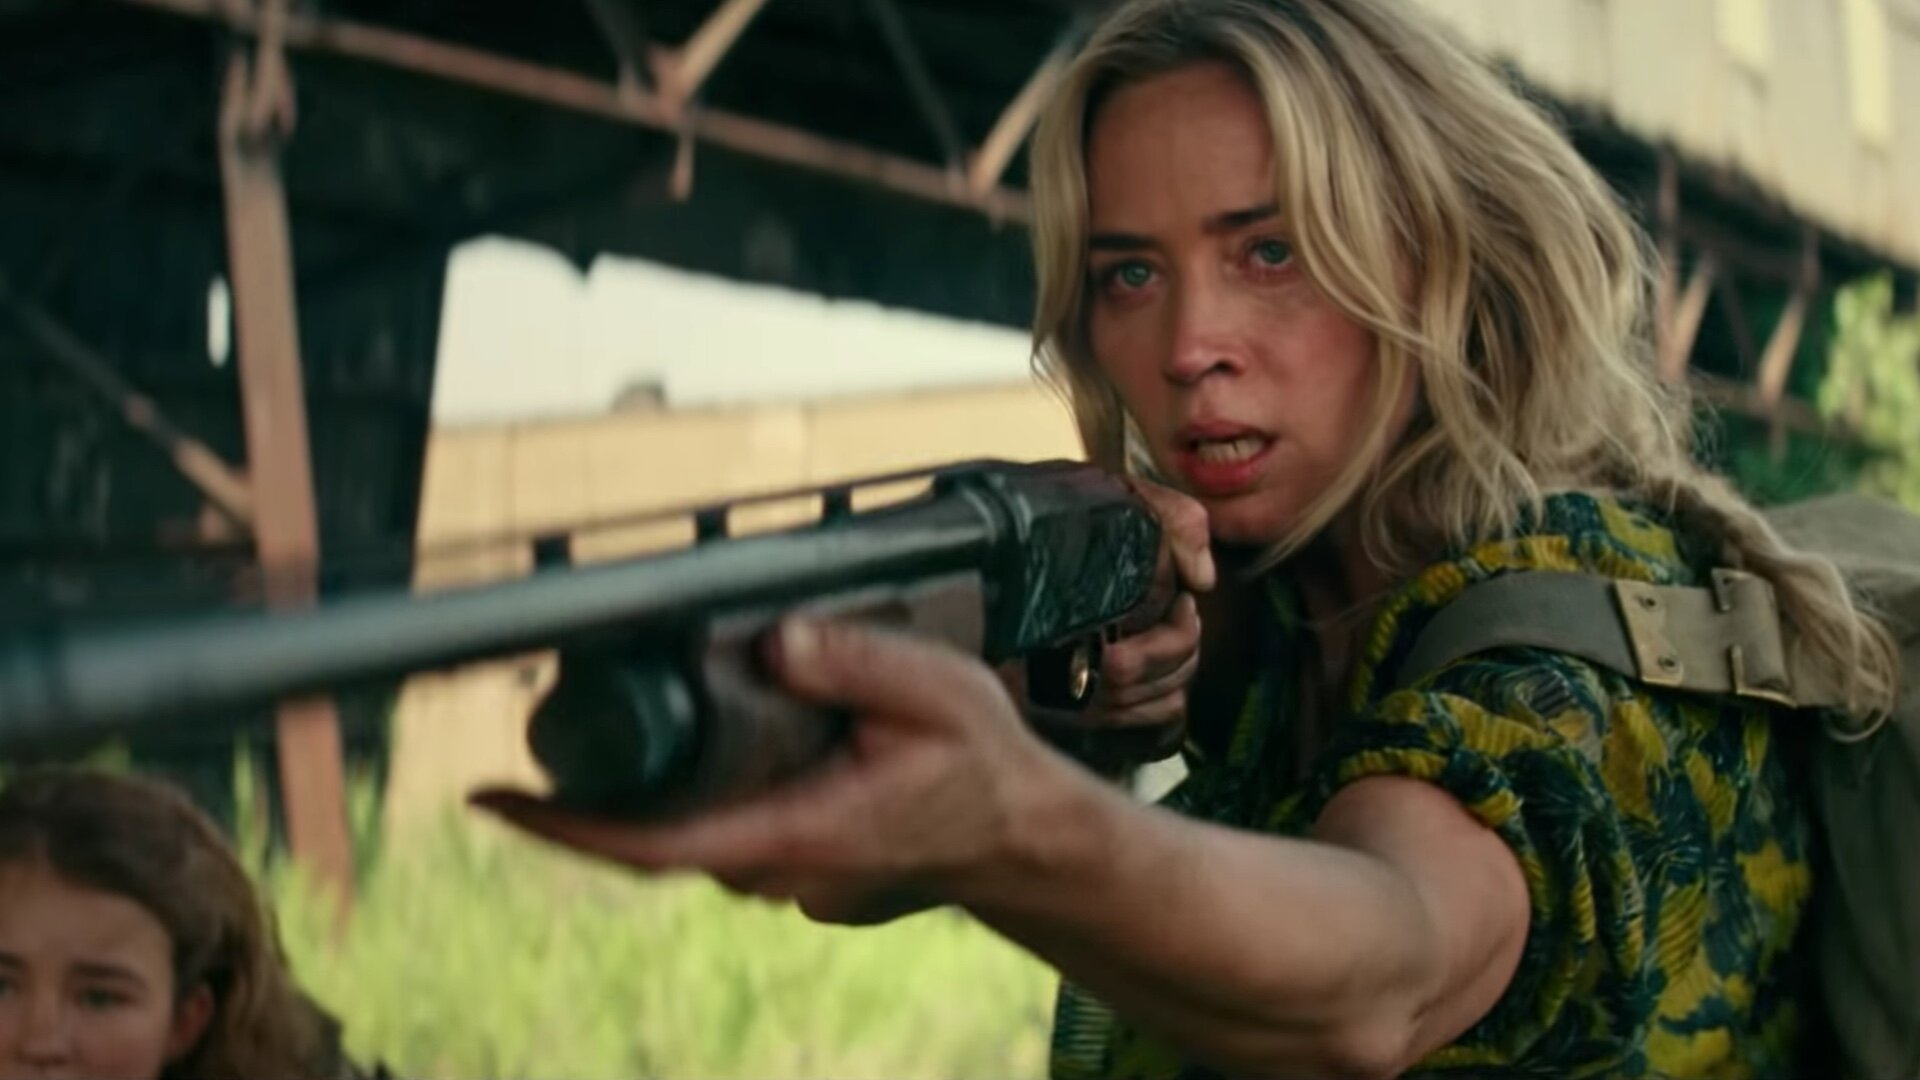 John Krasinski and Emily Blunt are Finally Returning for A Quiet Place Part II